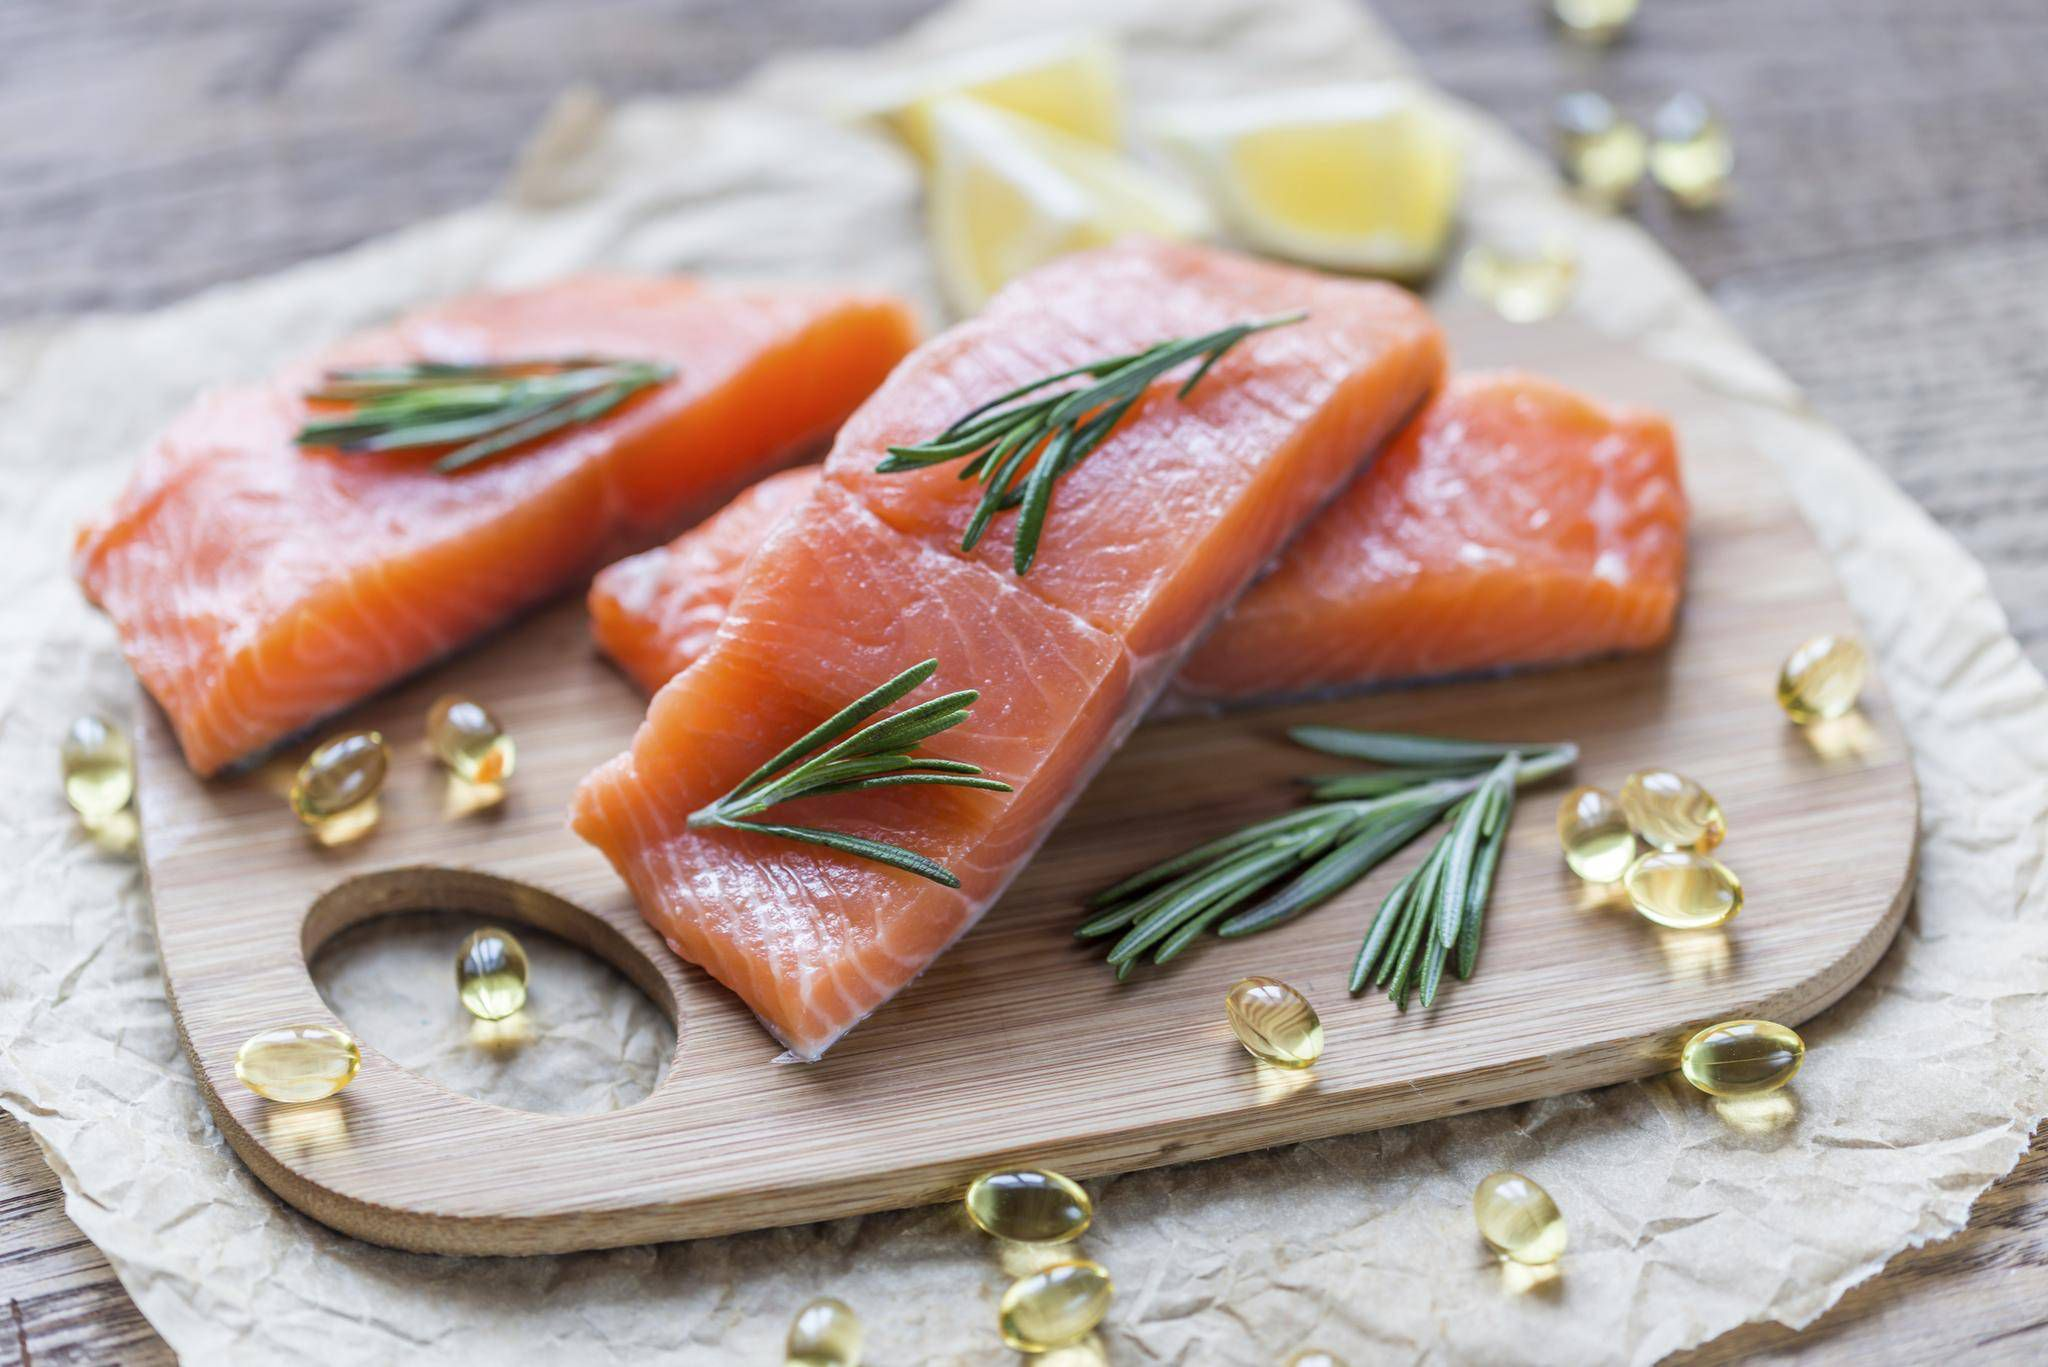 Don't like fish? Follow these tips to navigate the omega-3 ...